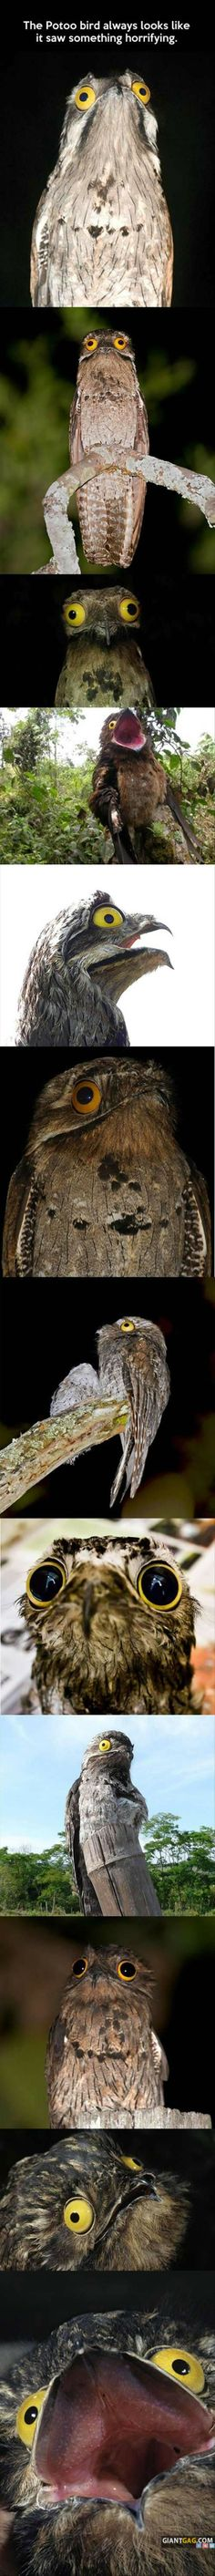 Images of the day -75 pics- The Potoo Bird Always Looks Like It Saw Something Horrifying